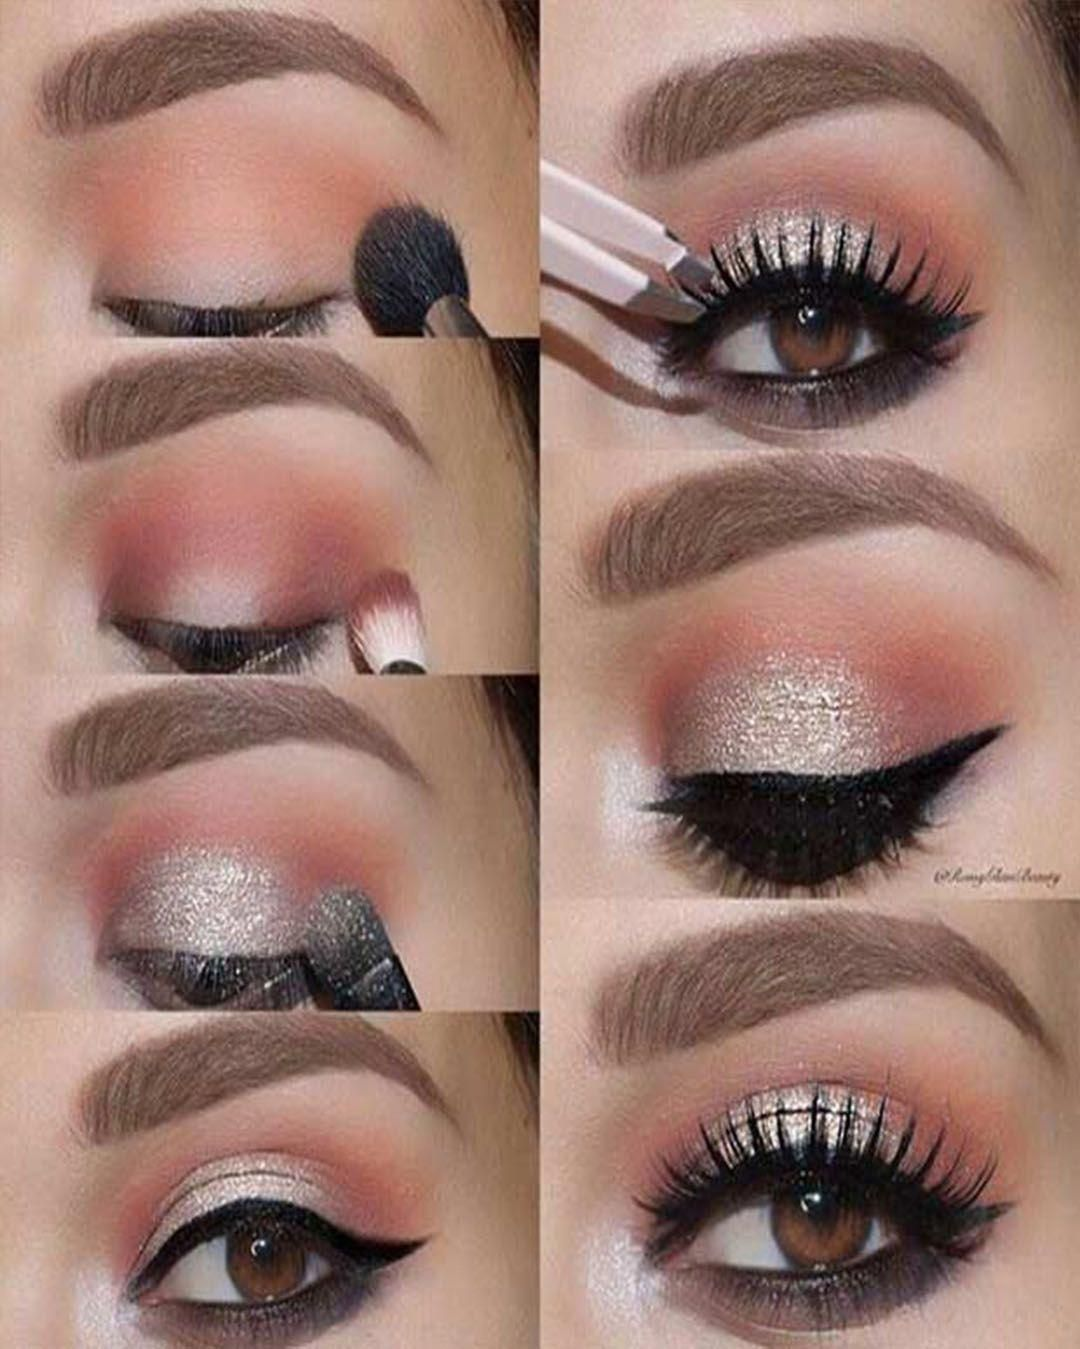 Click the link to learn more makeup hacks makeupartist